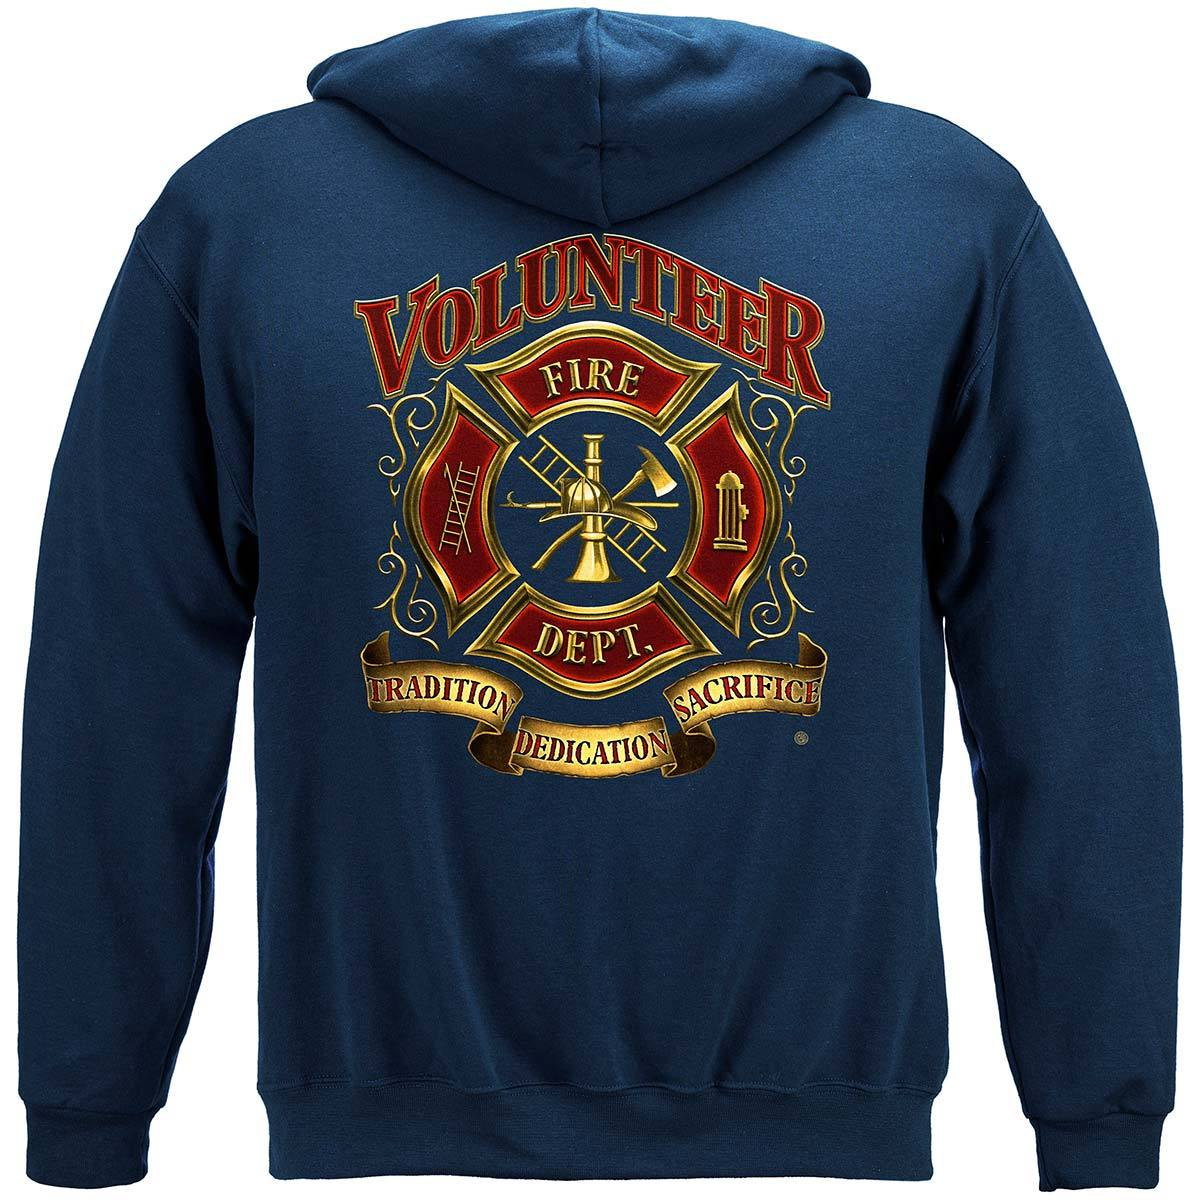 Volunteer Fire Tradition Sacrifice Dedication Premium Hooded Sweat Shirt